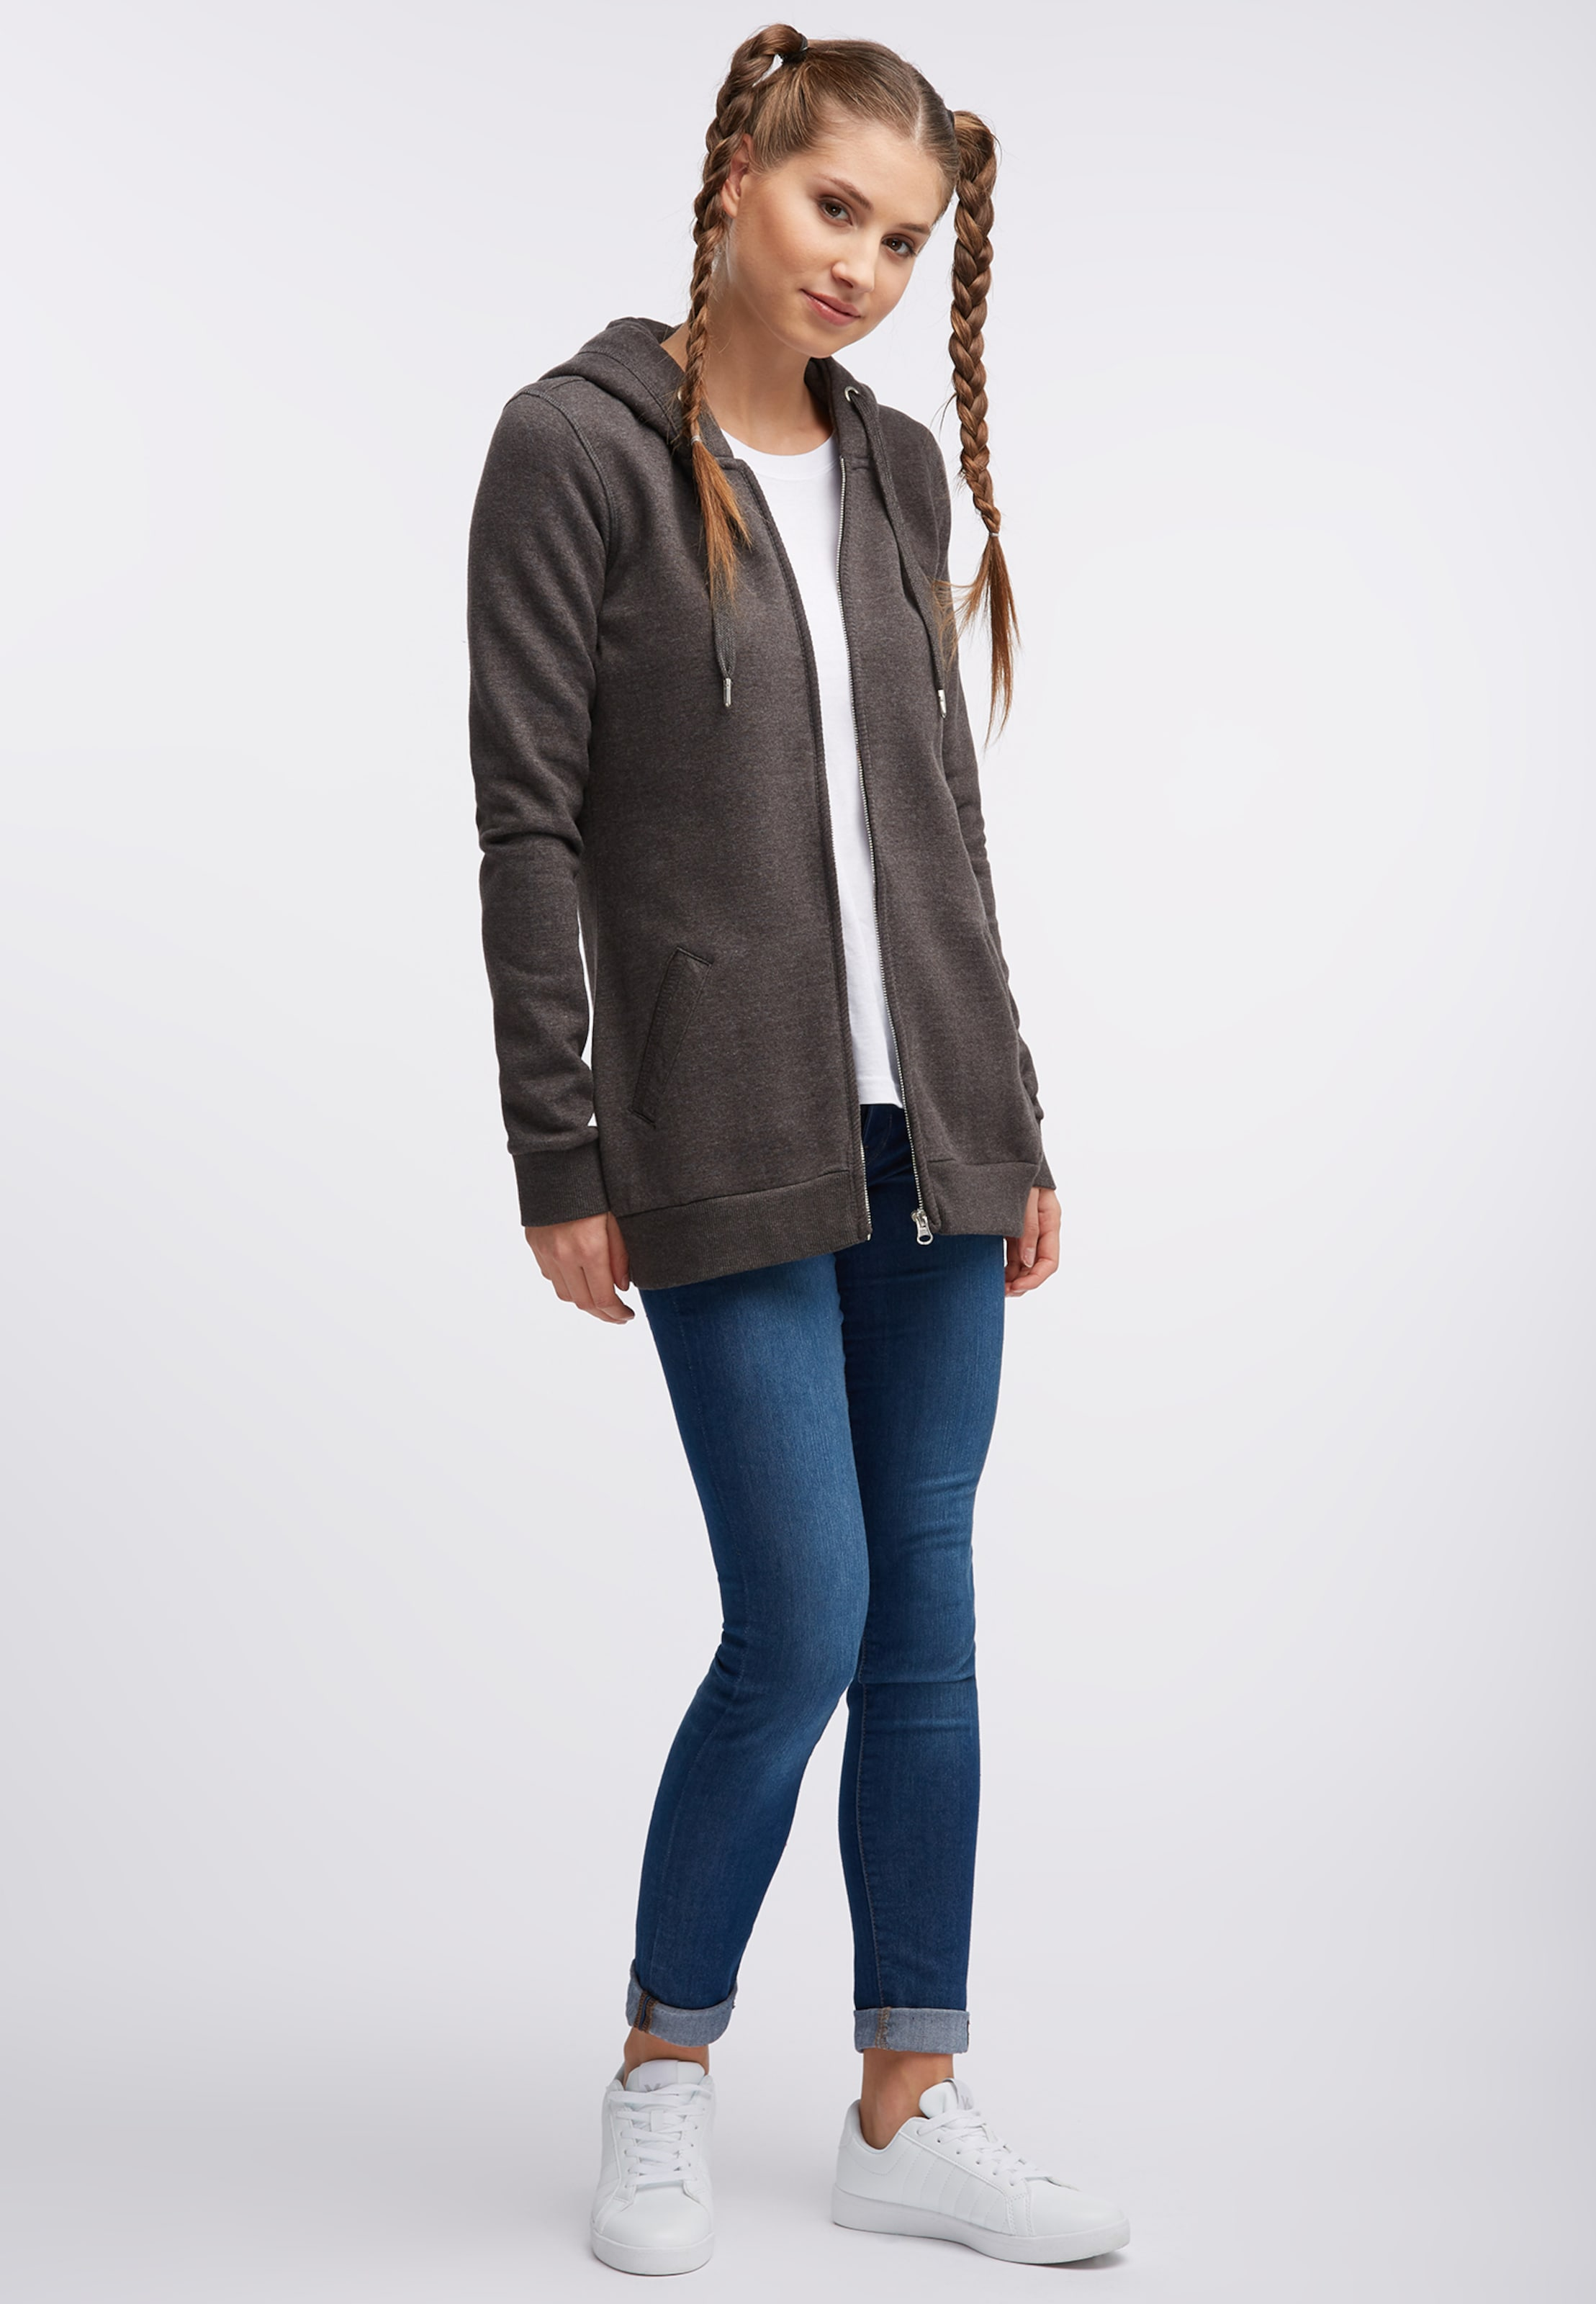 Sweatjacke In Mymo In Sweatjacke Mymo Sweatjacke Anthrazit Mymo Anthrazit Mymo In Sweatjacke Anthrazit wPXnO80kN